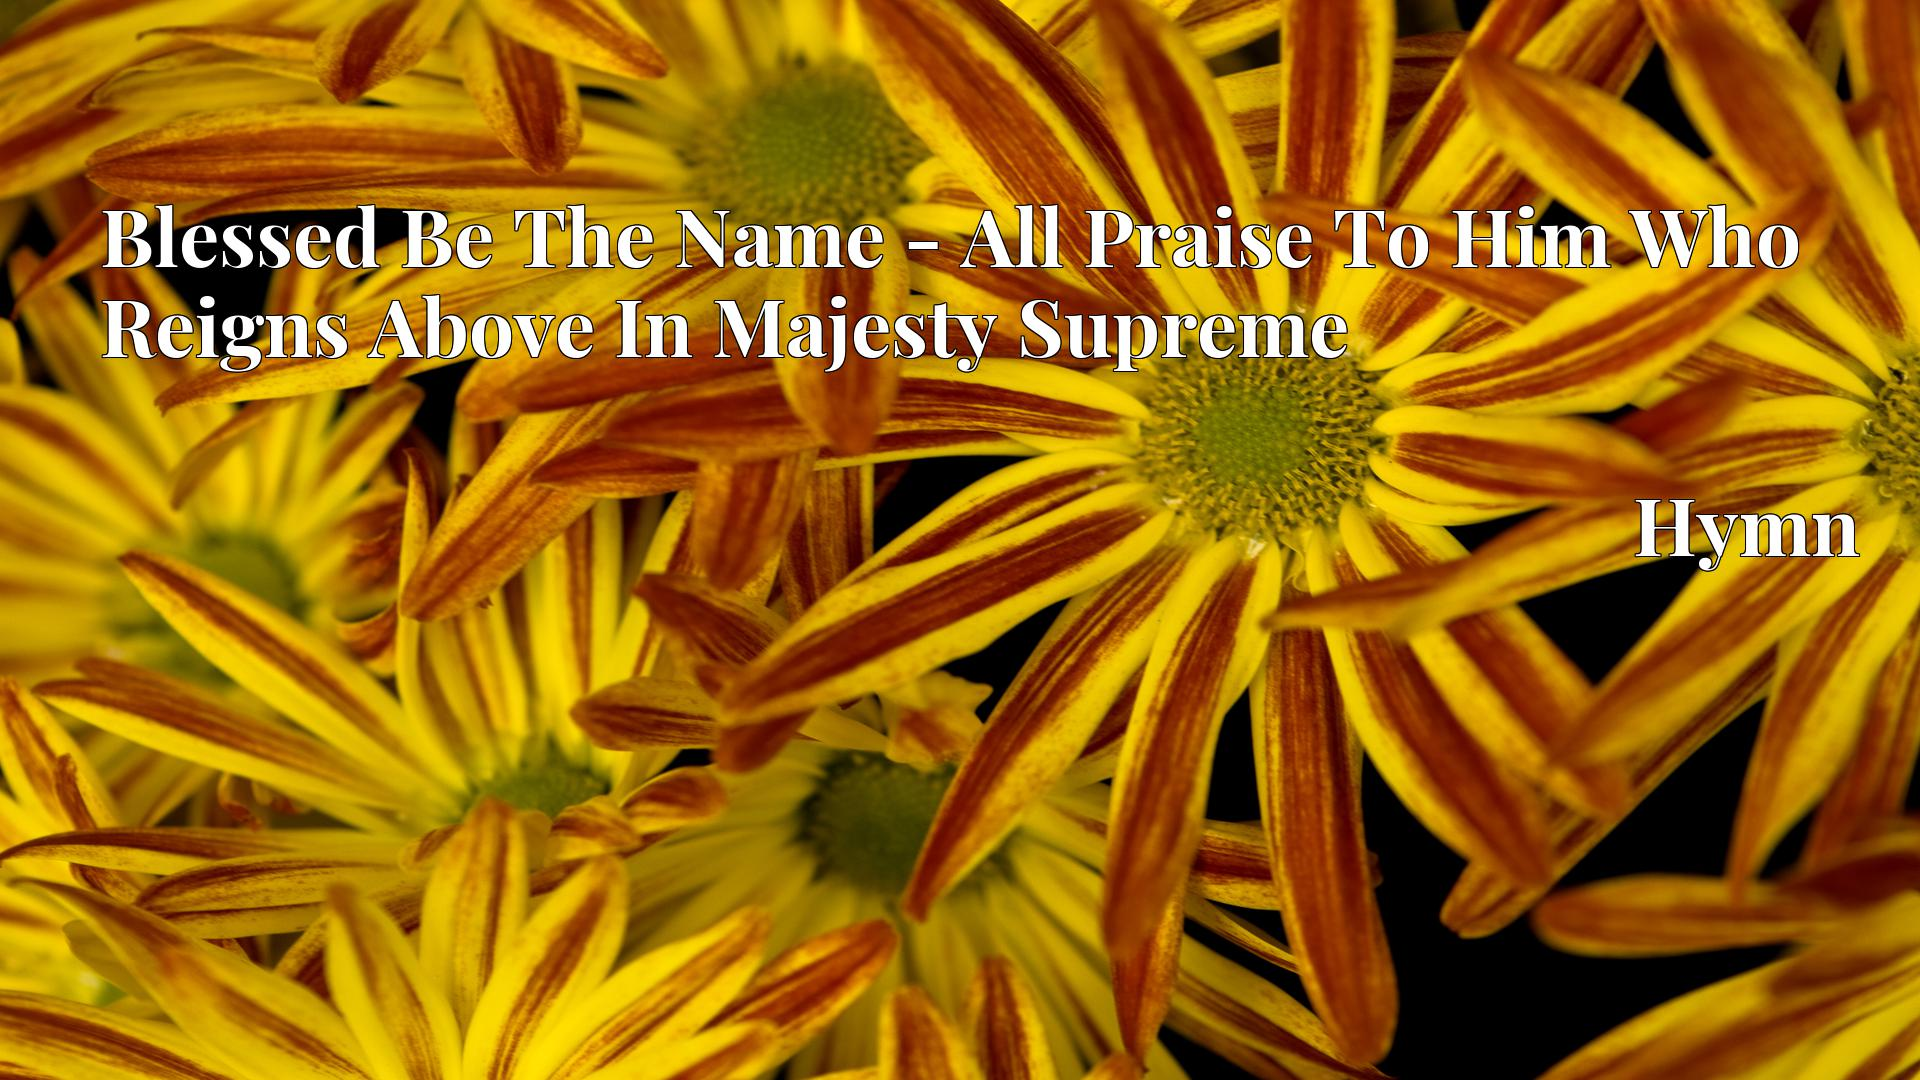 Blessed Be The Name - All Praise To Him Who Reigns Above In Majesty Supreme Hymn